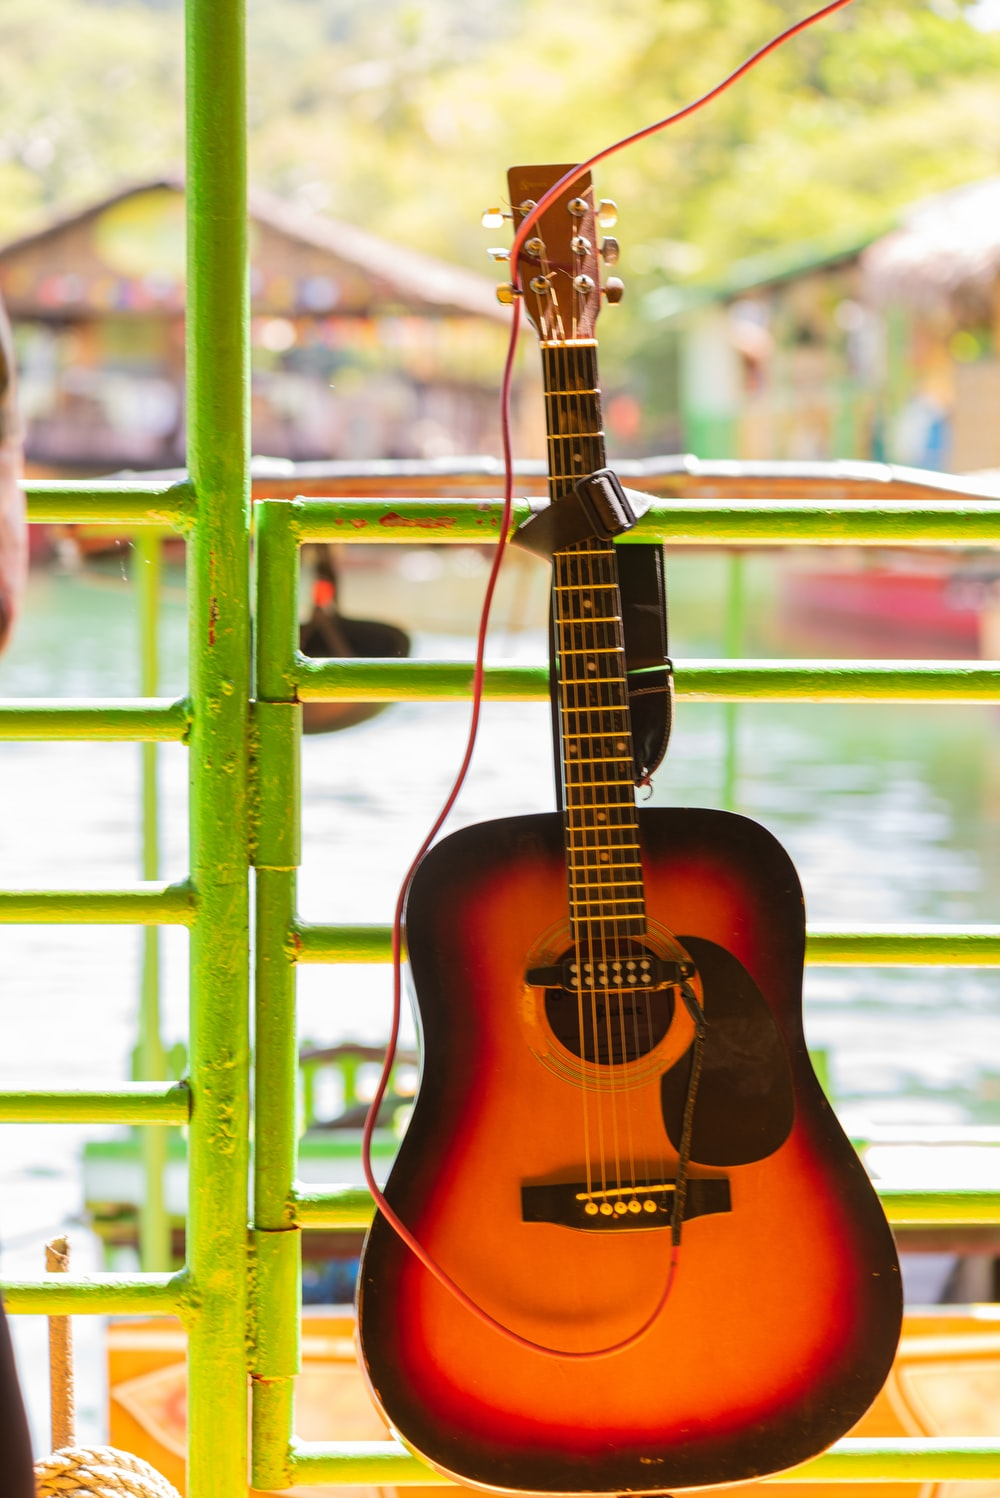 brown acoustic guitar on green metal fence